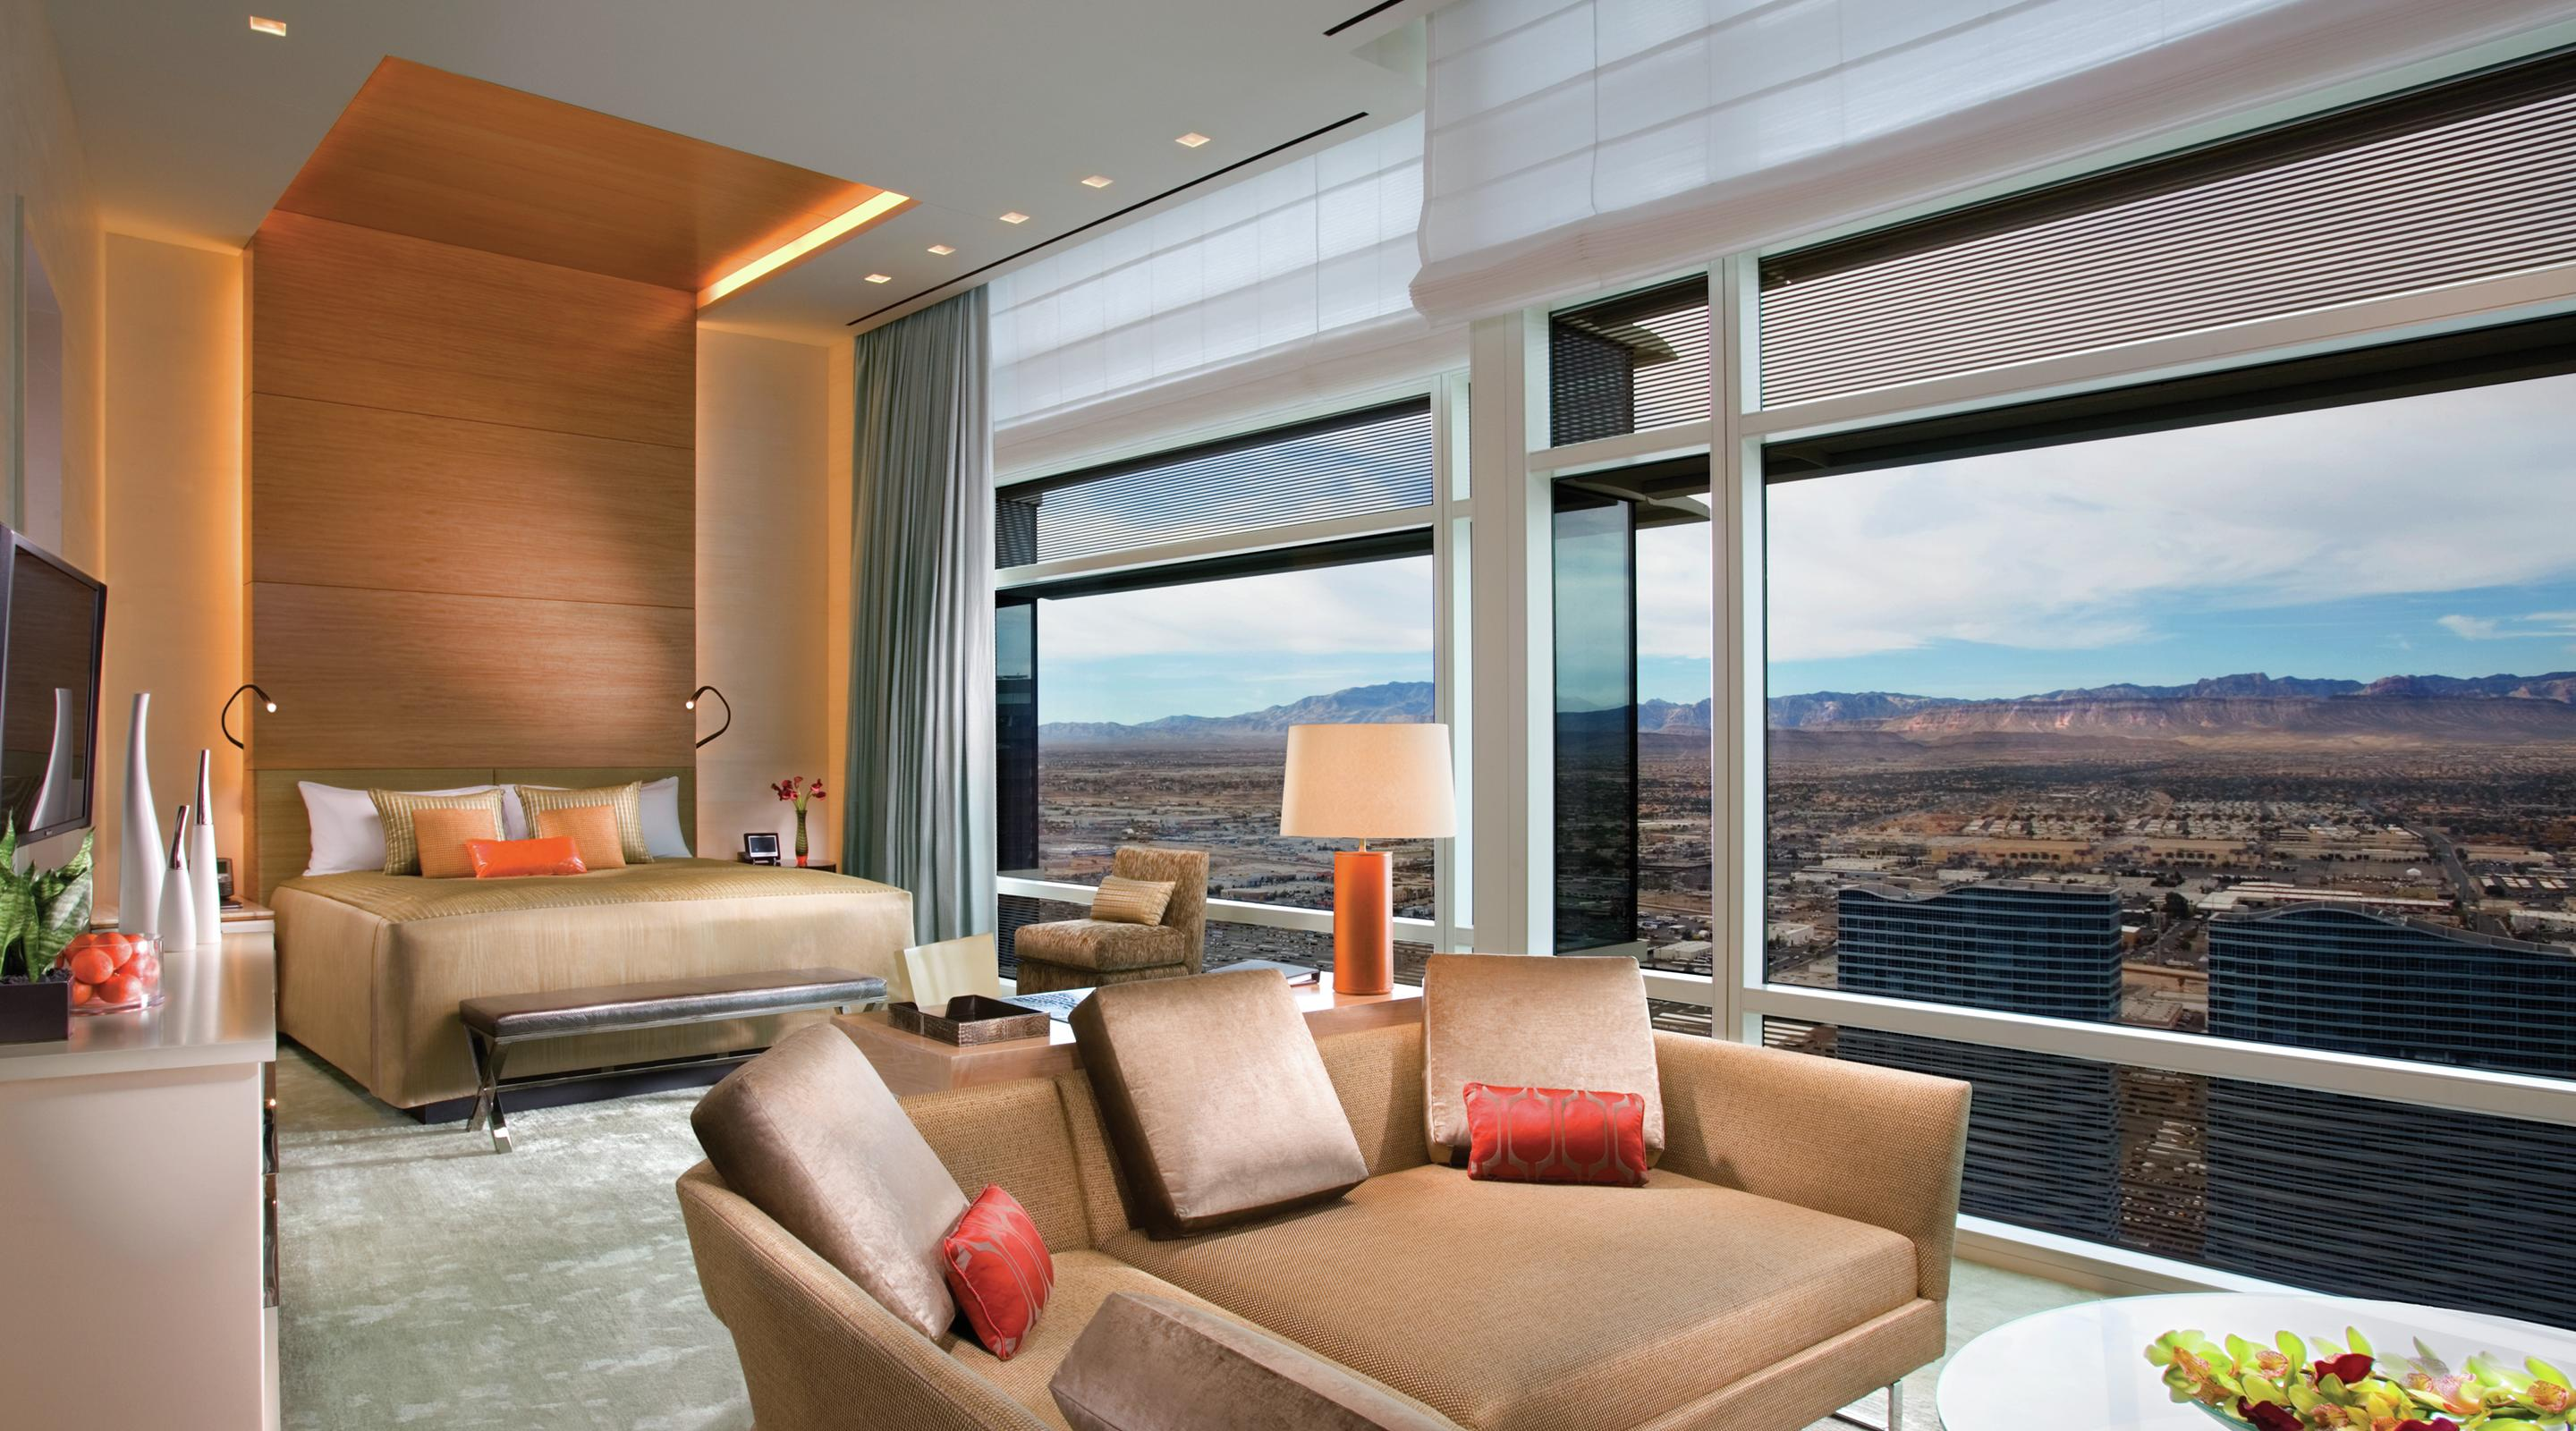 Las Vegas Hotels Suites 3 Bedroom Sky Villa Luxury Two Bedroom Suites Aria Resort Casino